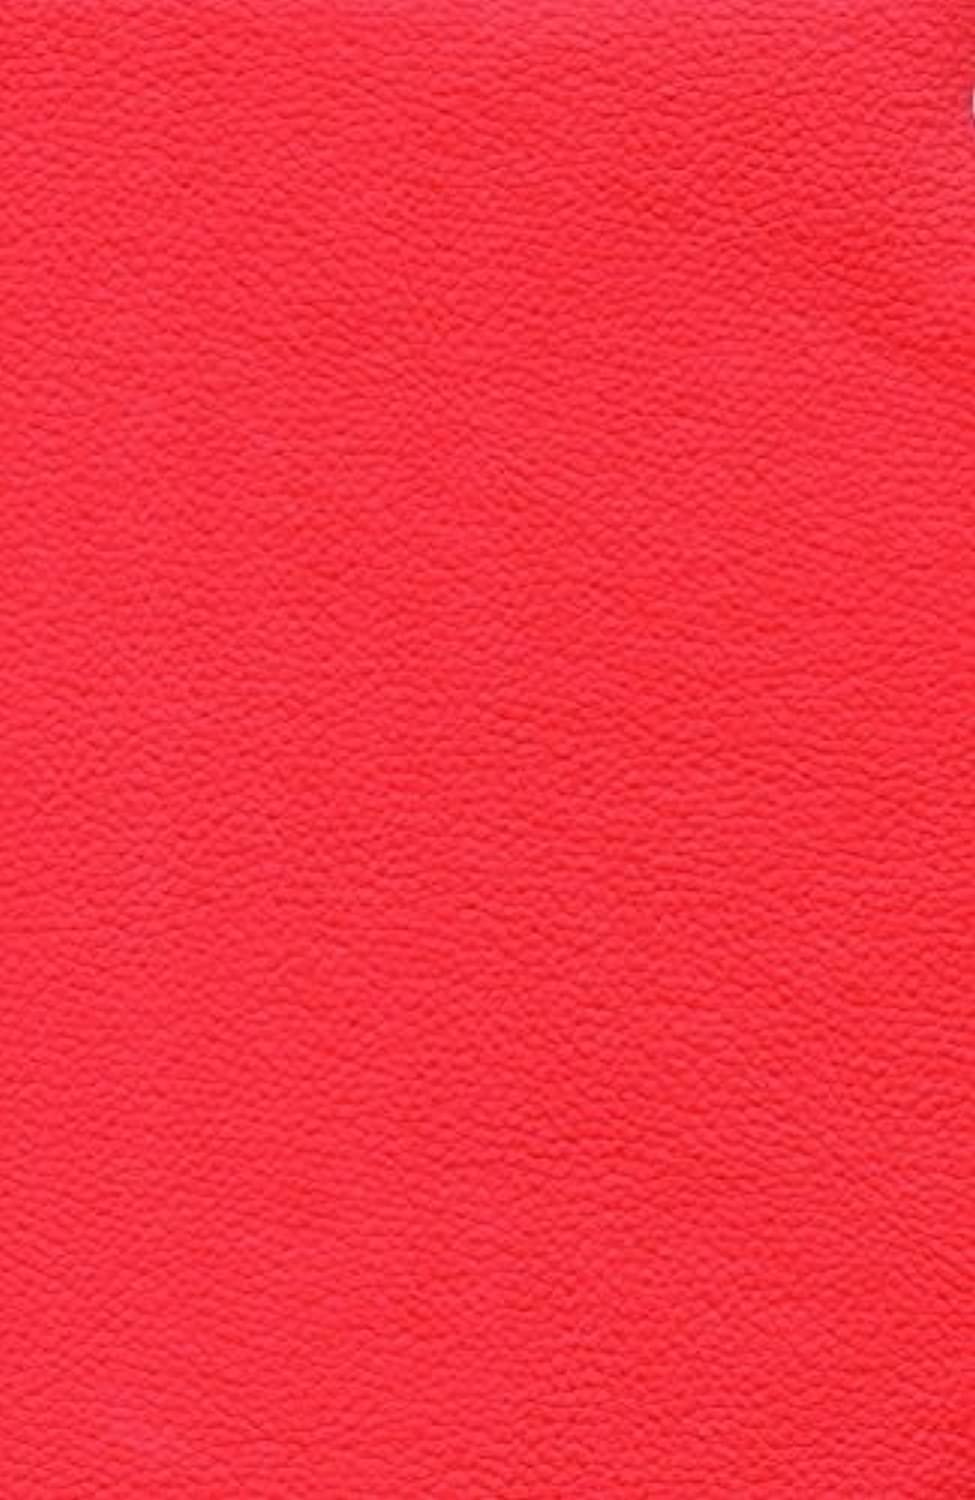 Marine Vinyl rojo Champion Outdoor indoor Pebble Grains Fabric 54  Width Sold By the Yard by luvfabrics